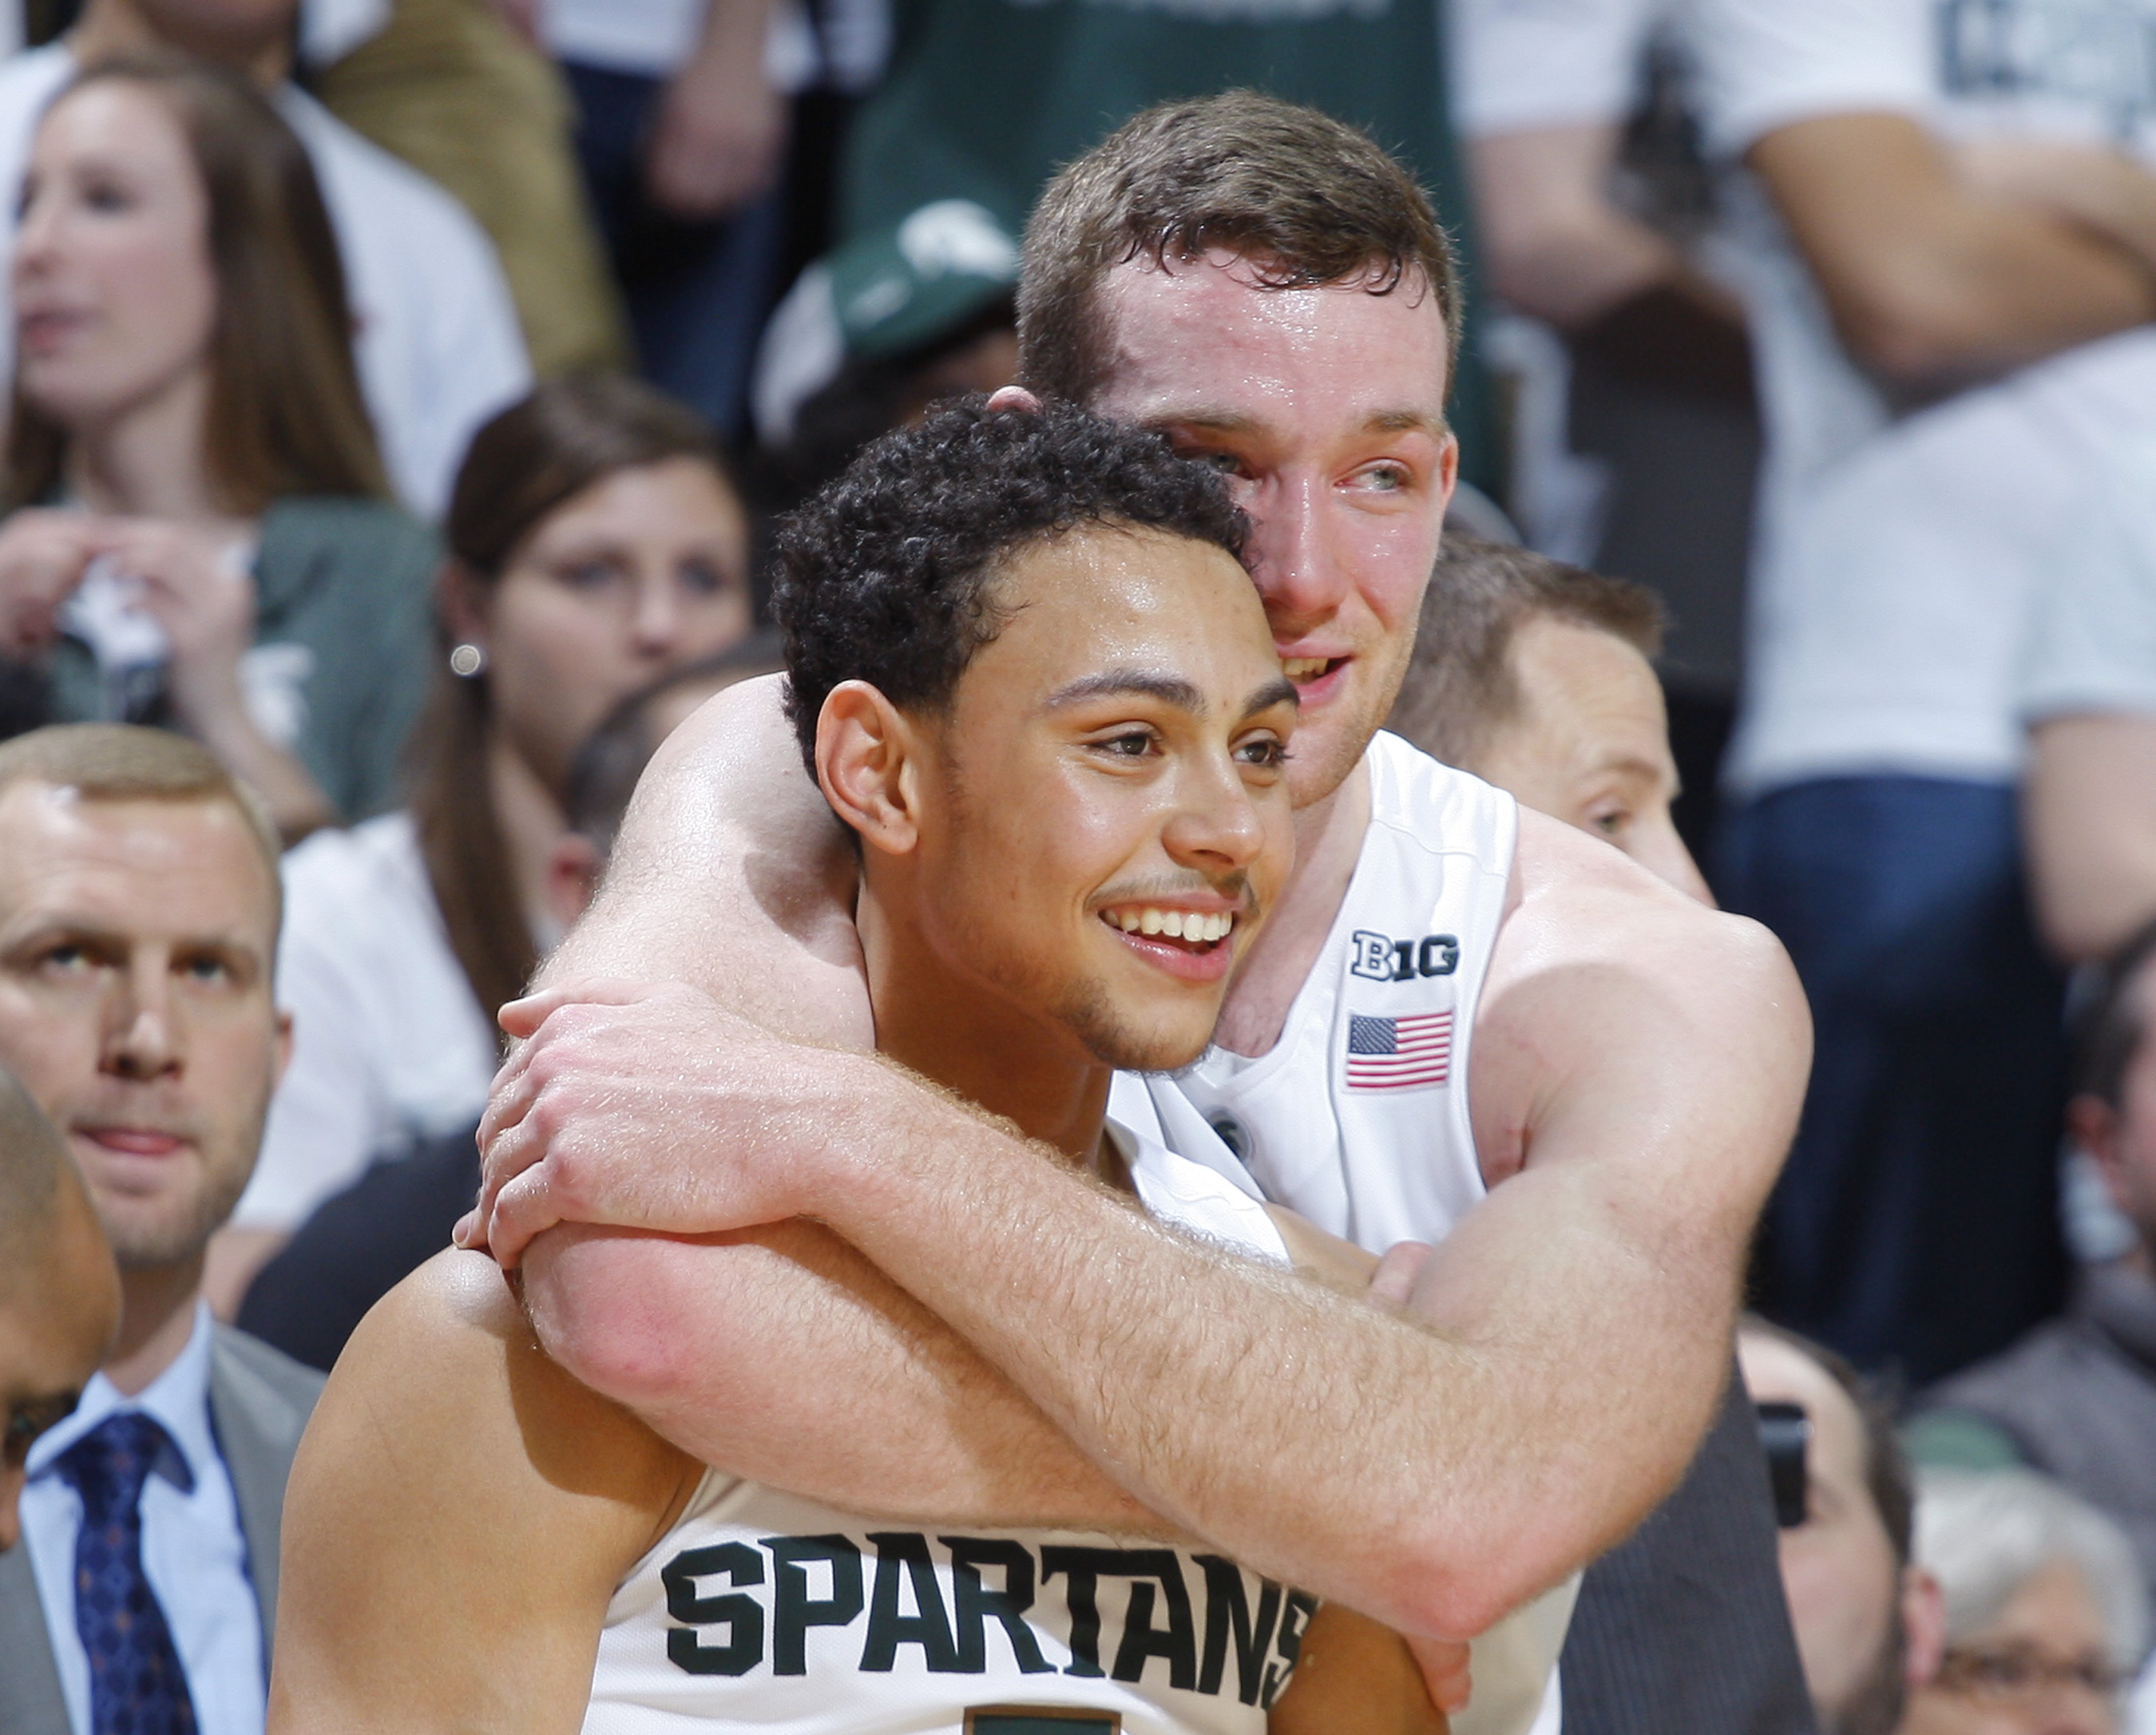 Michigan State seniors Bryn Forbes, left, and Matt Costello watch from the bench during the closing moments of an NCAA college basketball game against Ohio State, Saturday, March 5, 2016, in East Lansing, Mich. Michigan State won 91-76. (AP Photo/Al Goldi